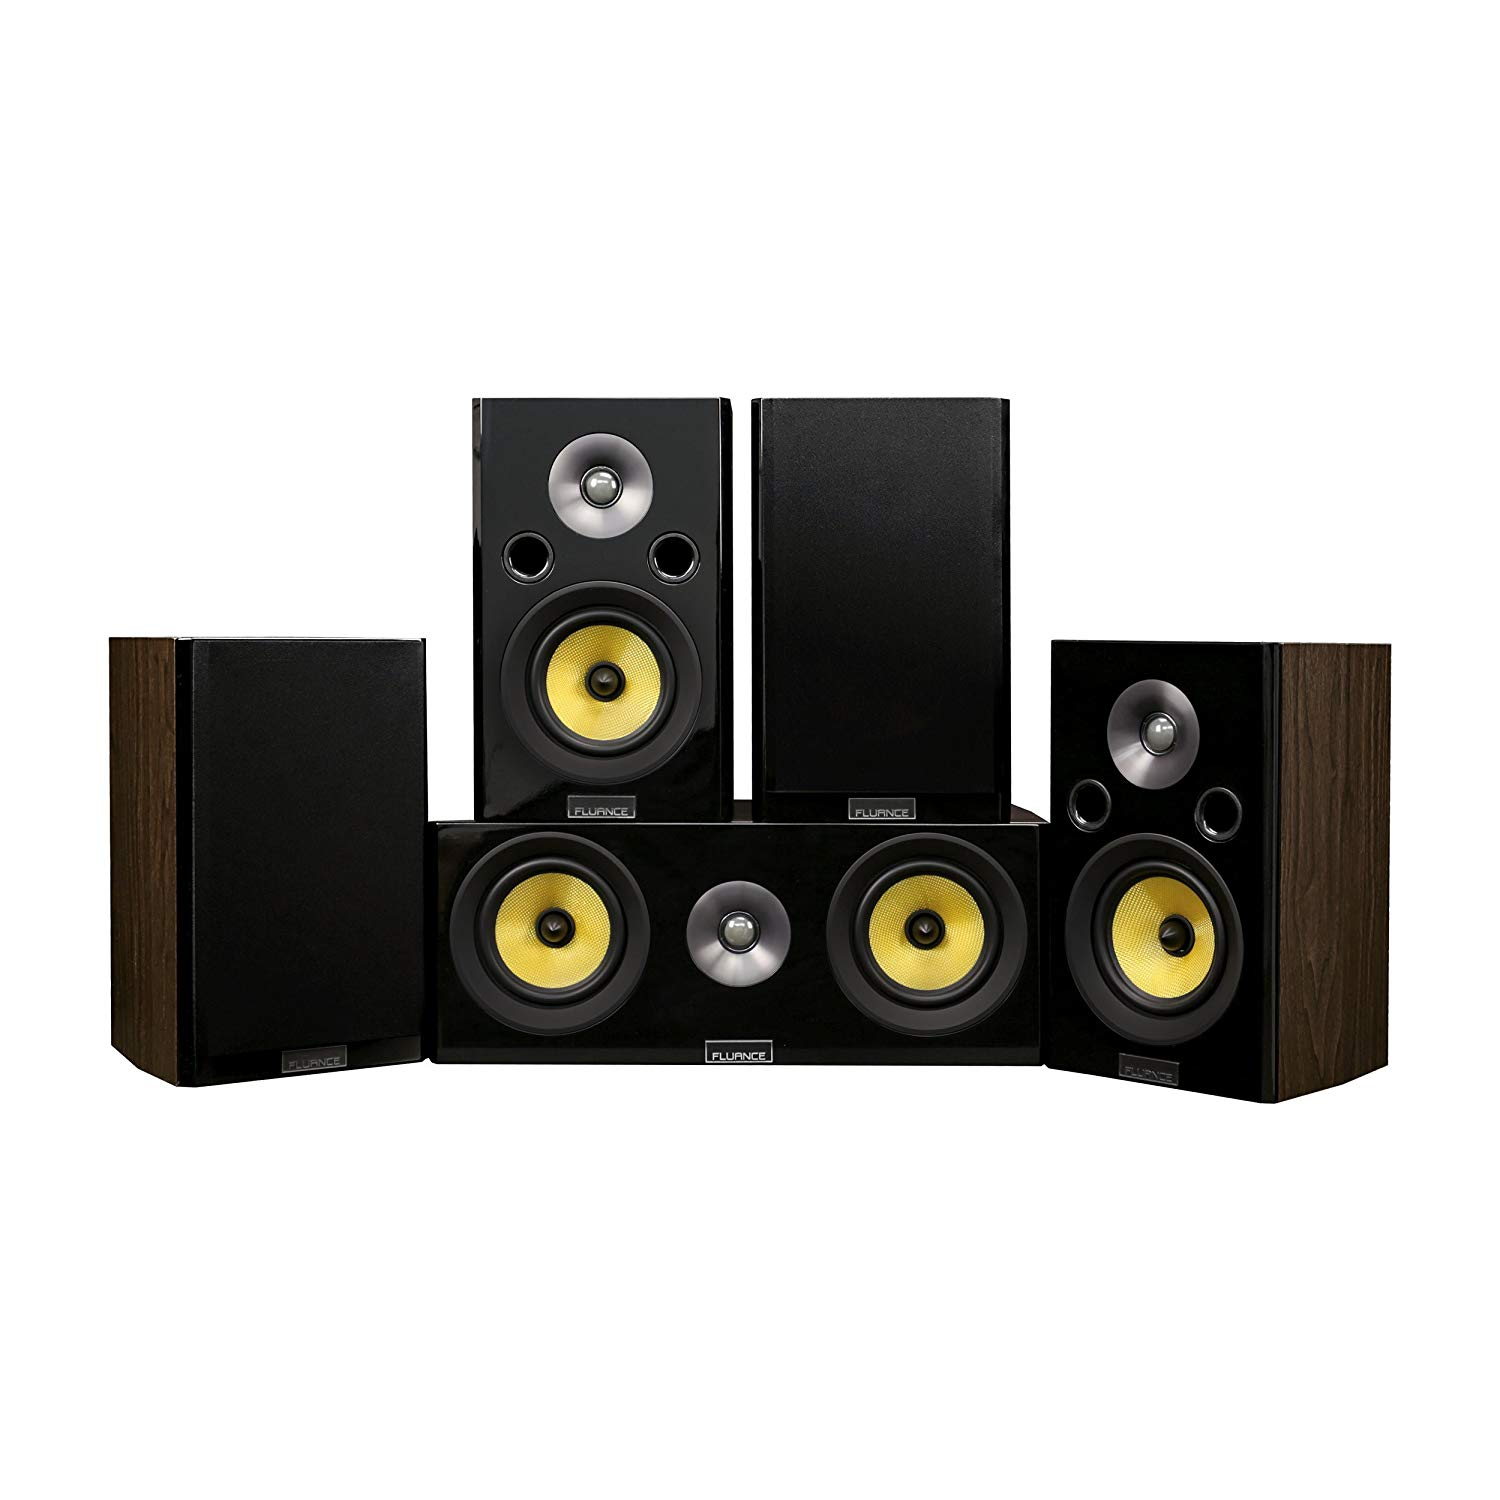 Fluance Signature Series Compact Surround Sound Home Theater 5.0 Channel Speaker System Including Two-Way Bookshelf, Center Channel, and Rear Surround Speakers - Walnut (HF50WC)